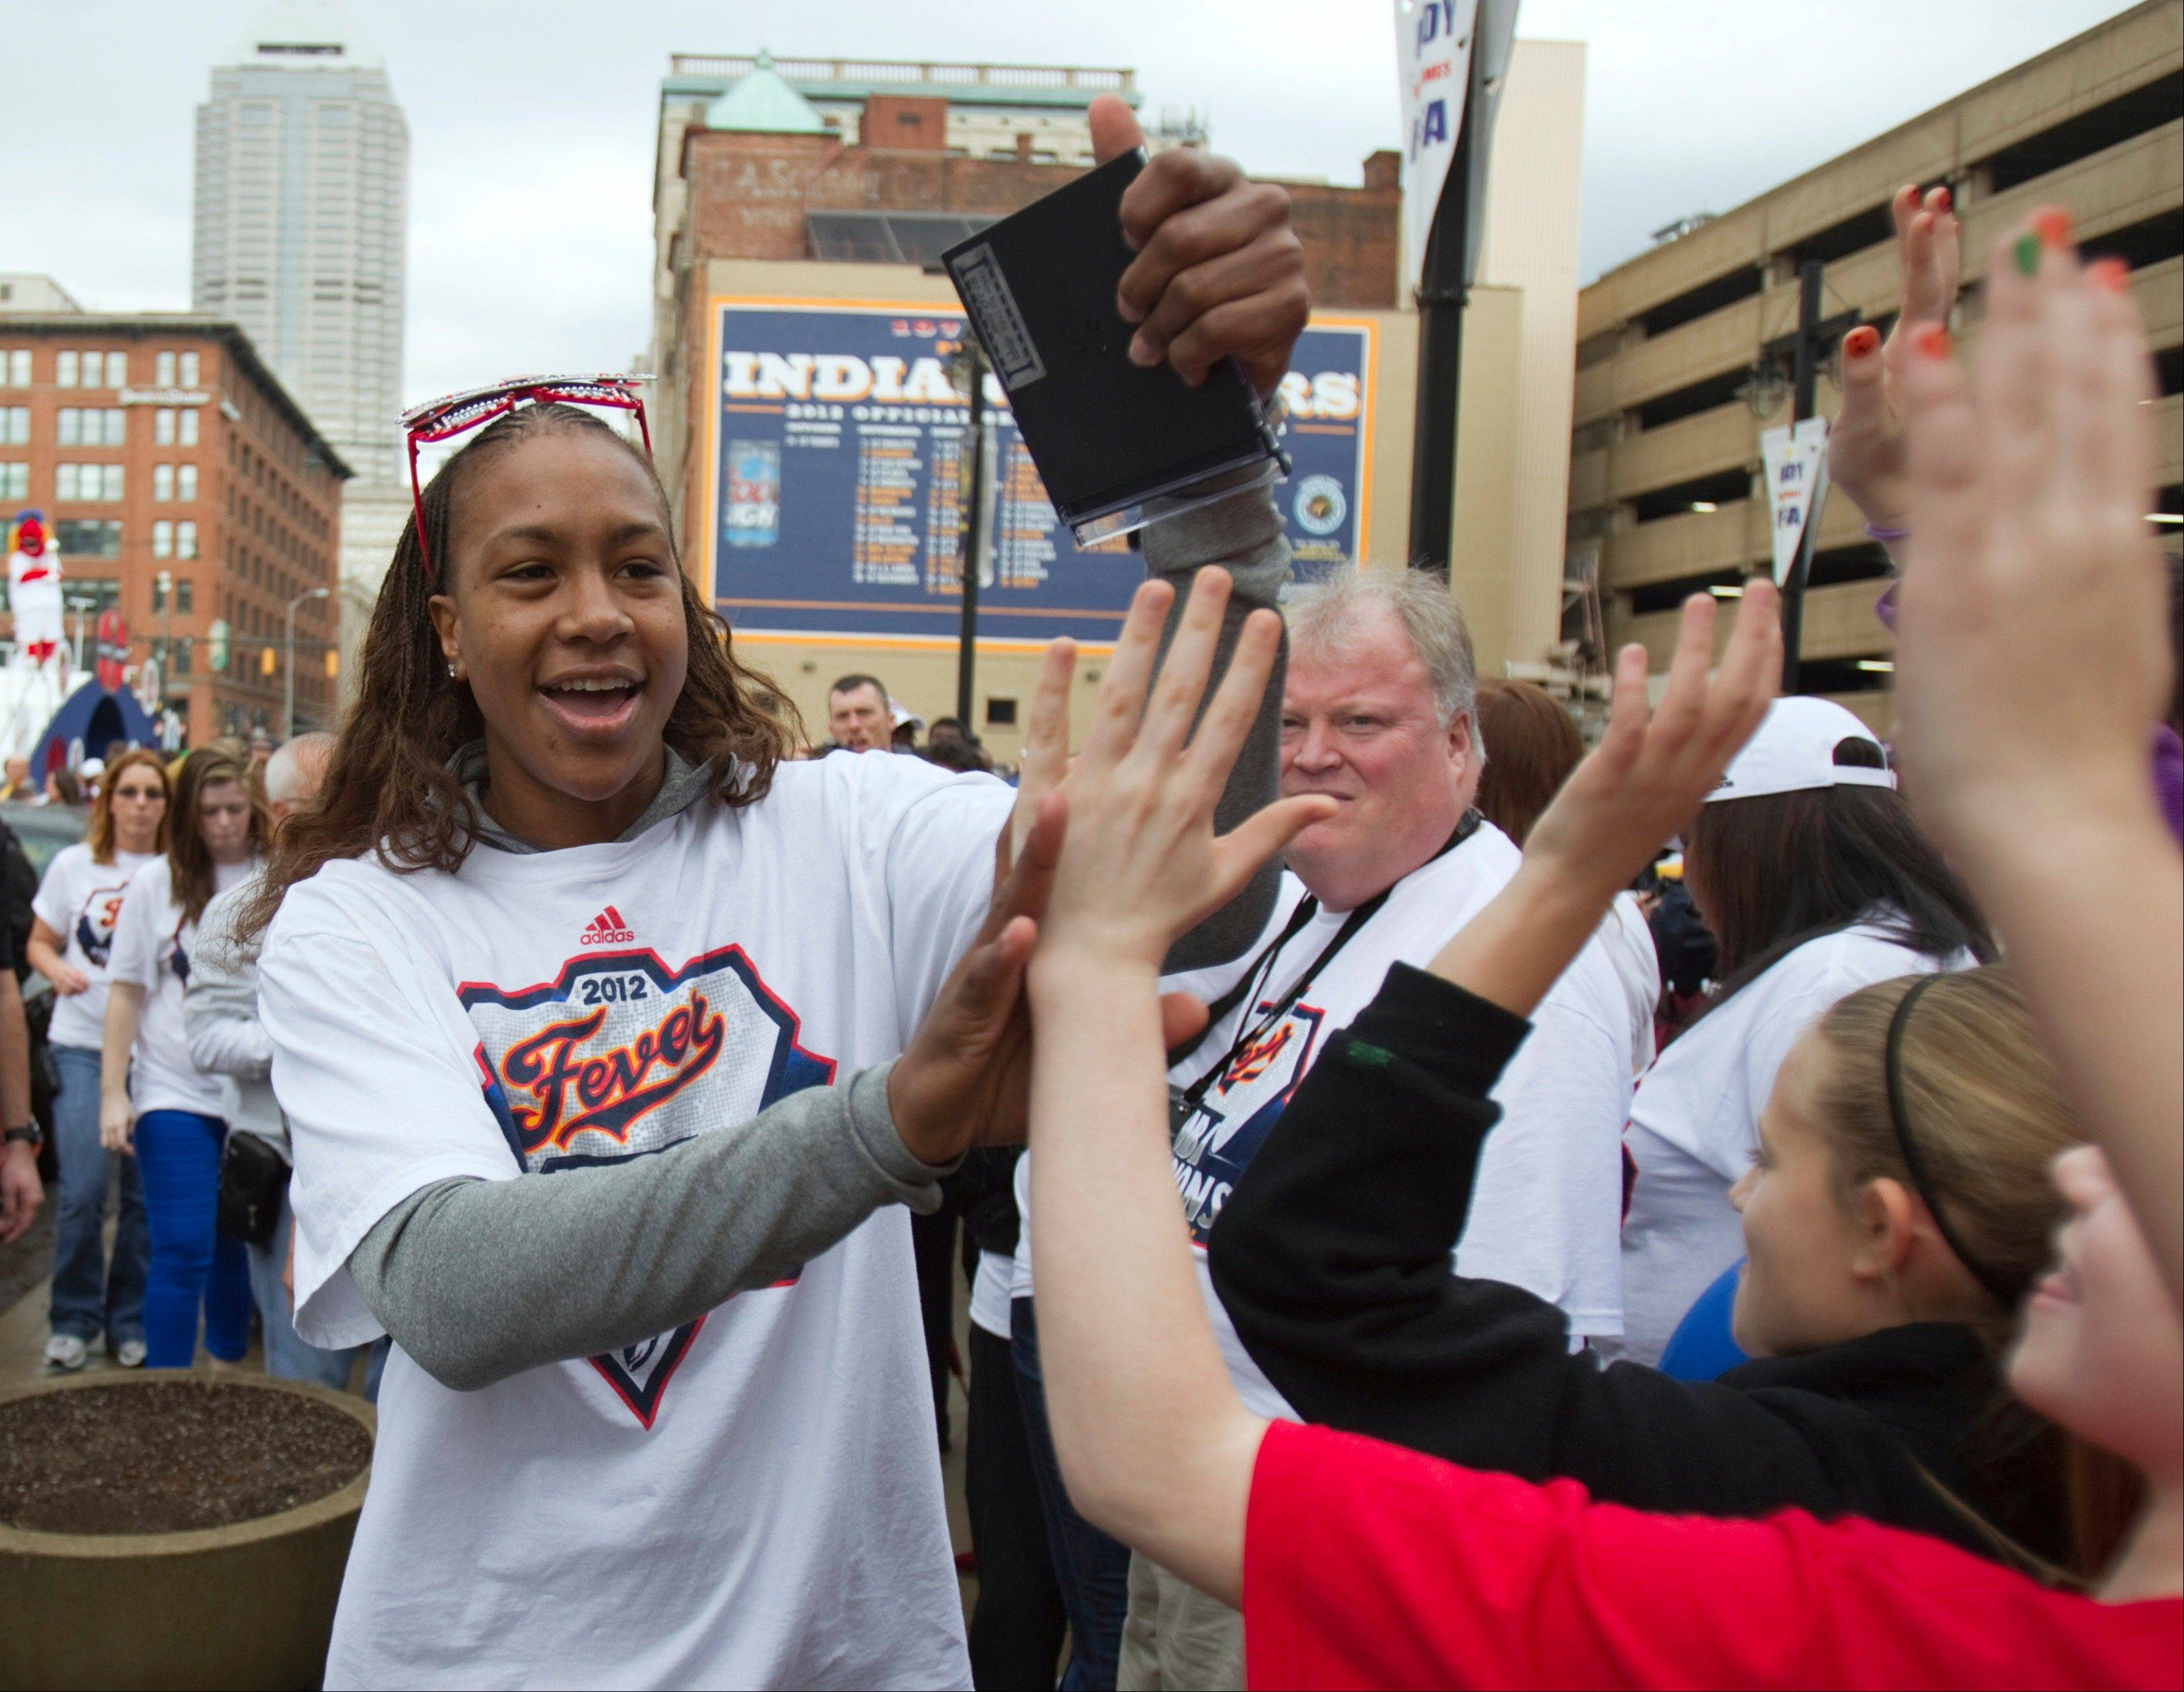 Indiana Fever's Tamika Catchings, MVP of the WNBA Finals, celebrates with fans at Bankers Life Fieldhouse on Tuesday. The team and several thousand fans moved their party indoors to the field house as morning rain scrapped plans for a parade. The Fever wrapped up the title Sunday night, beating the Minnesota Lynx three games to one.